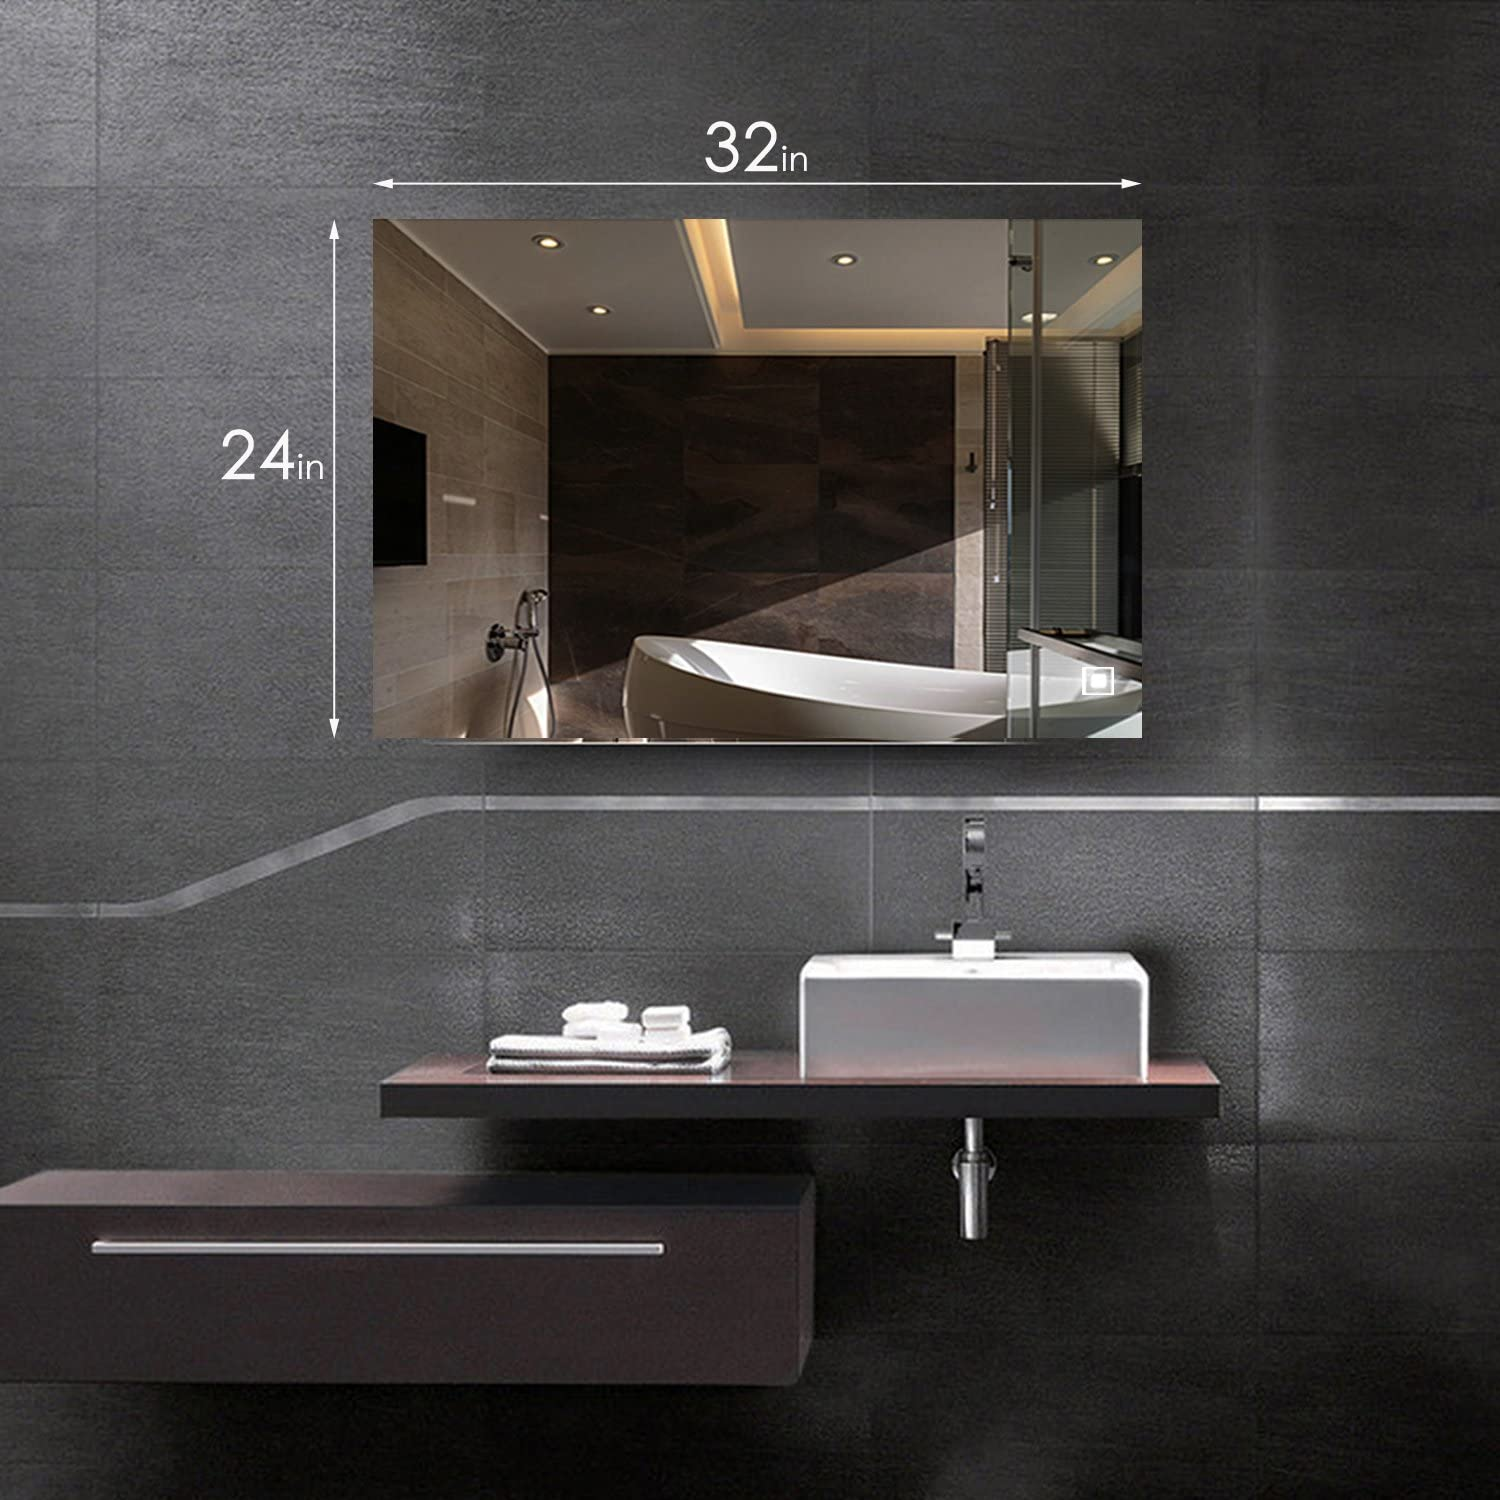 Hans Alice 32 X 24 Led Lighted Vanity Bathroom Mirror With Touch Button Makeup Mirror Wall Bar Mirror Silver Home Kitchen